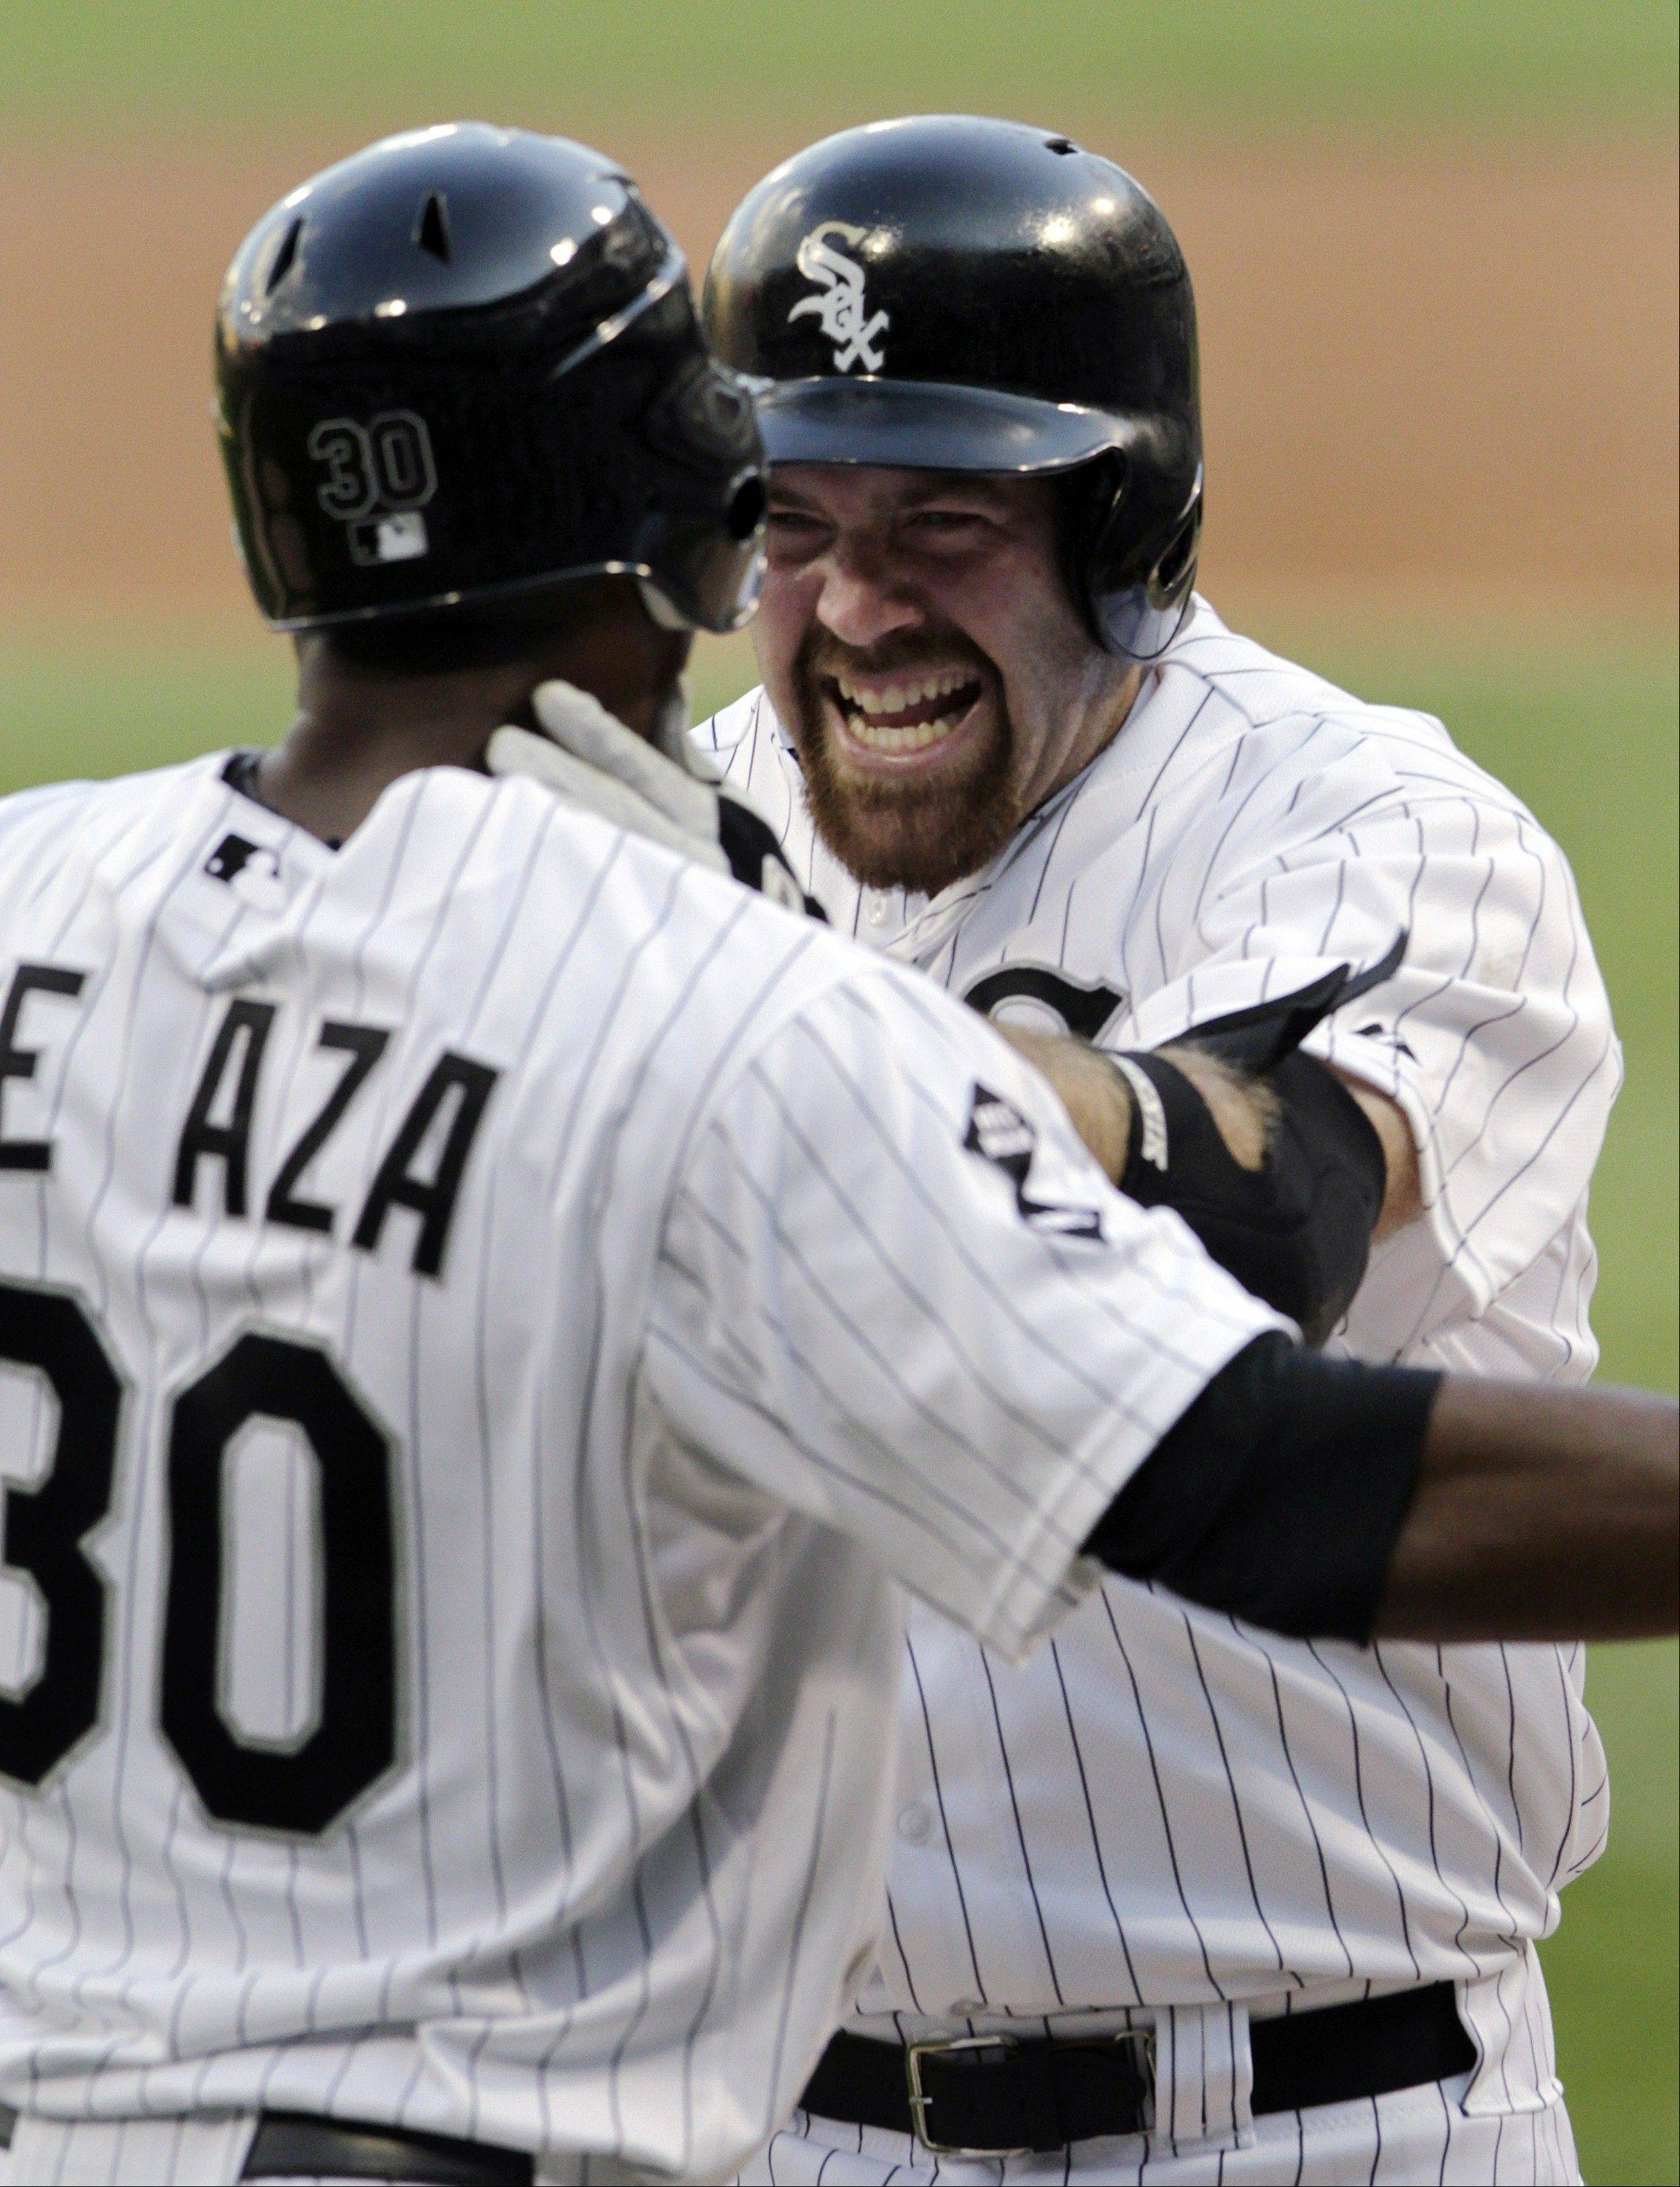 White Sox third baseman Kevin Youkilis, right, celebrates with Alejandro De Aza as they scored on Youkilis' two-run home run Tuesday against the Texas Rangers during the first inning at U.S. Cellular Field.